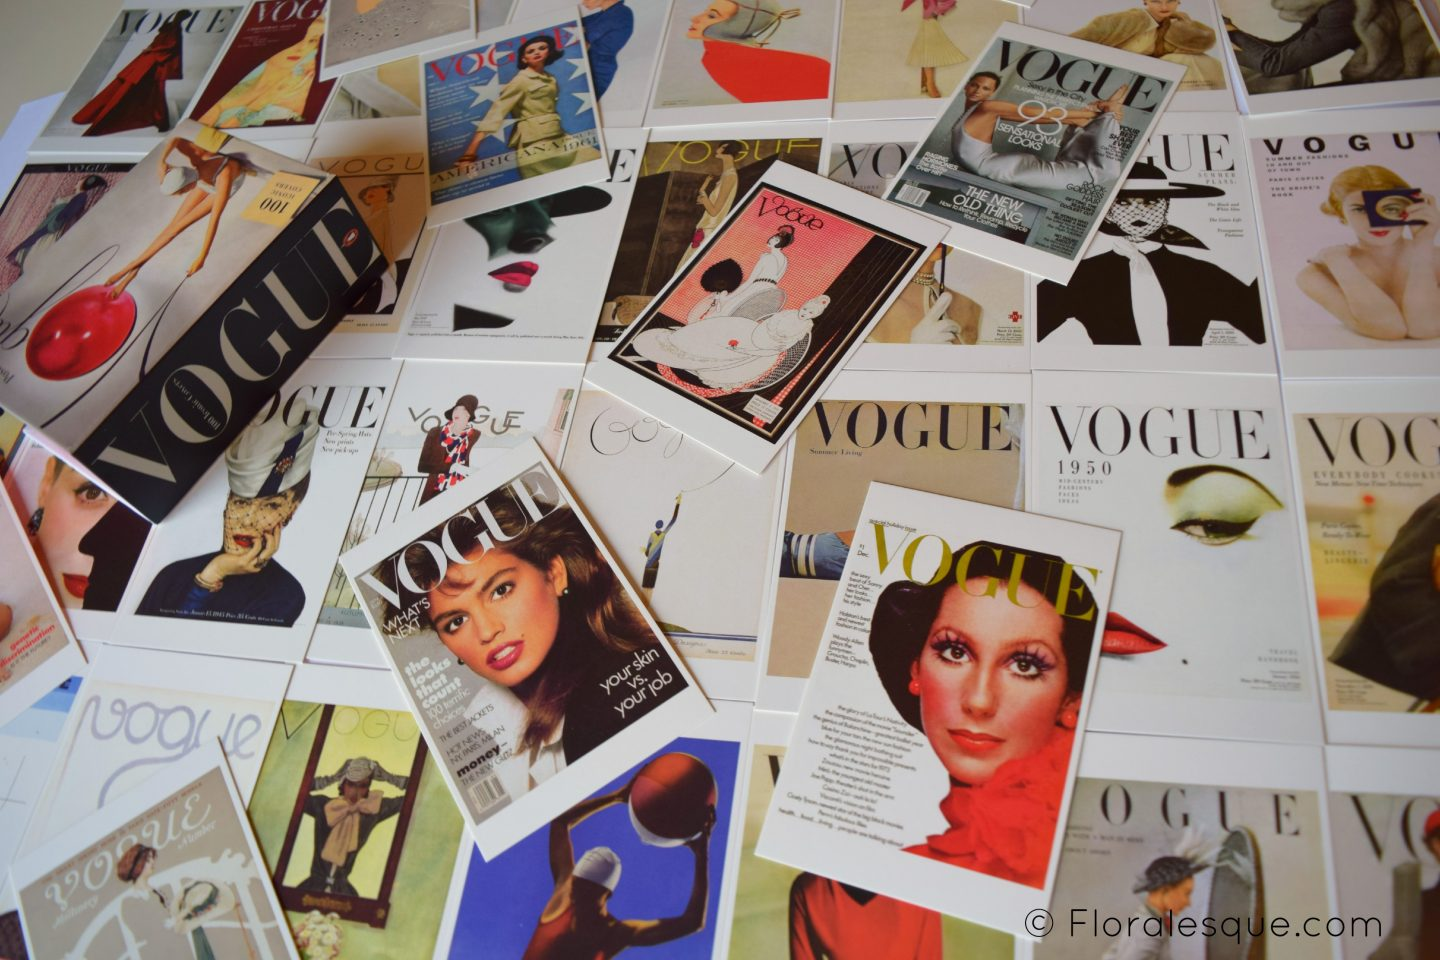 Postcards from Vogue - 100 Iconic Covers Compiled by - Vogue editors Floralesque